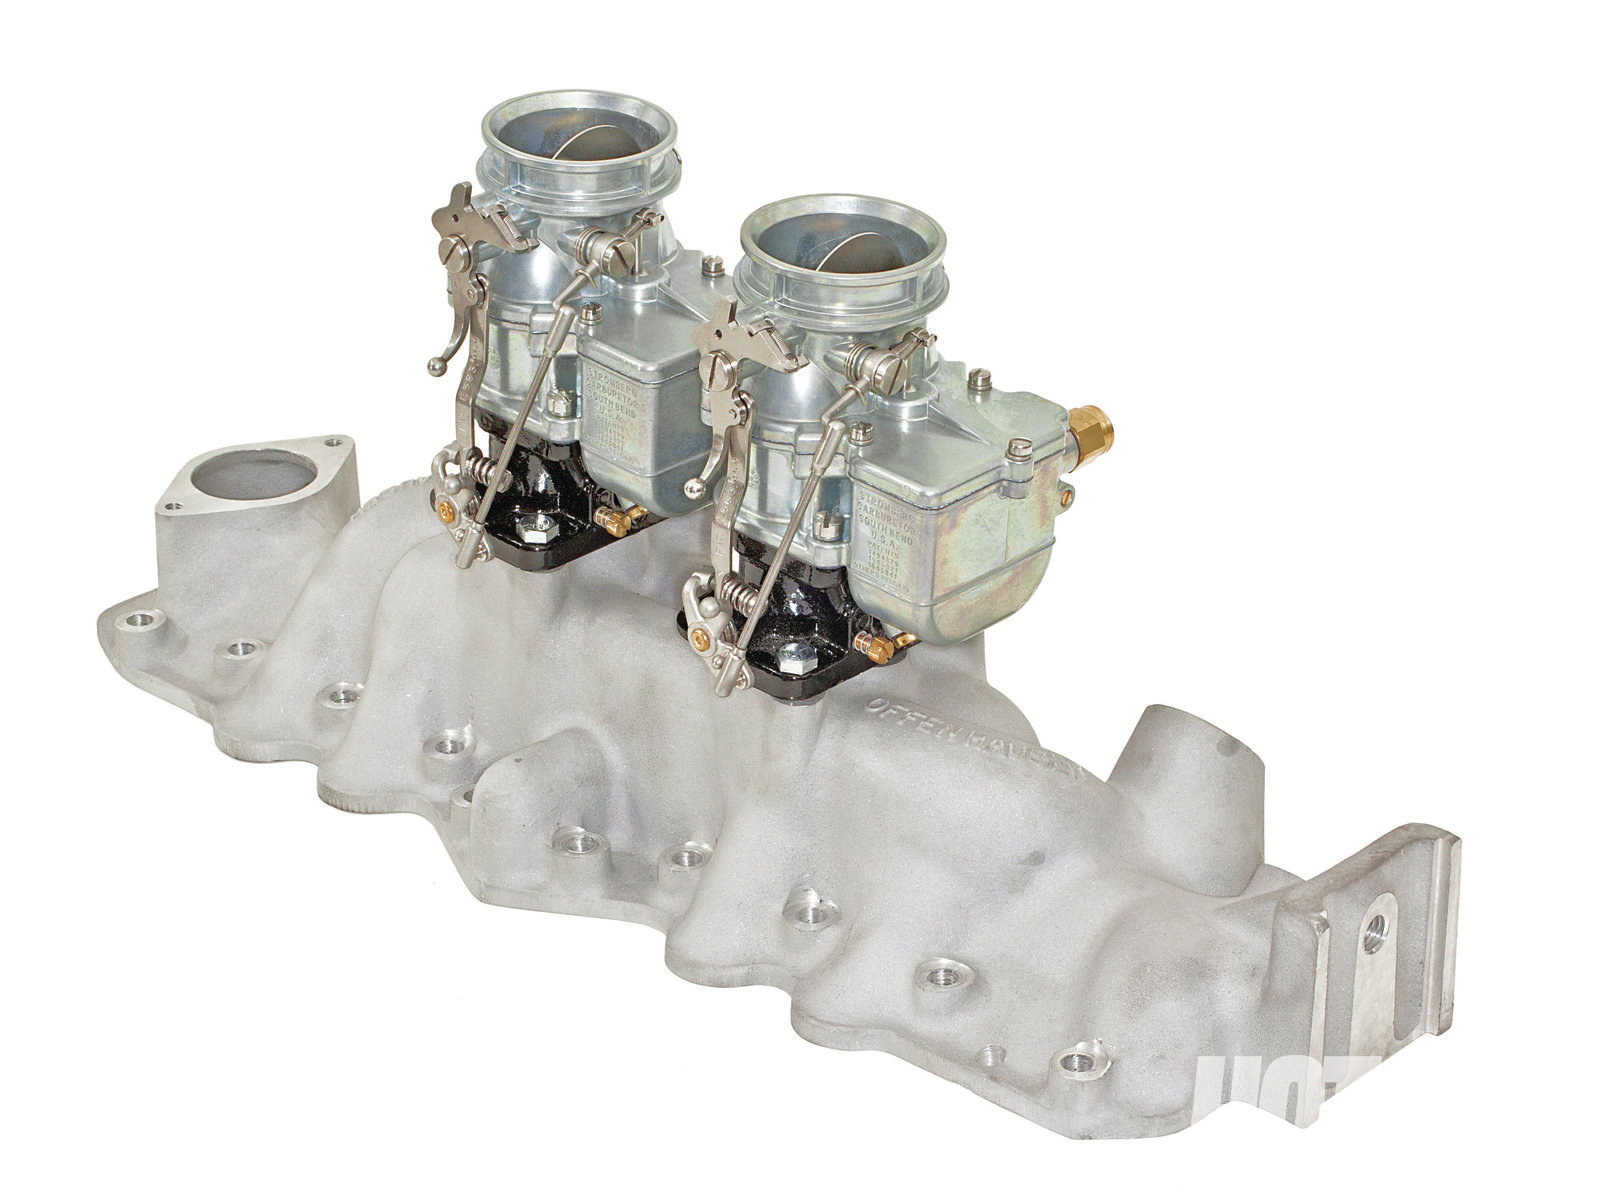 Said to be its most popular flathead intake, Offenhauser's 2x2 Regular intake has closely spaced carbs that will clear the stock generator. Offy makes two different versions for early and late flatheads.